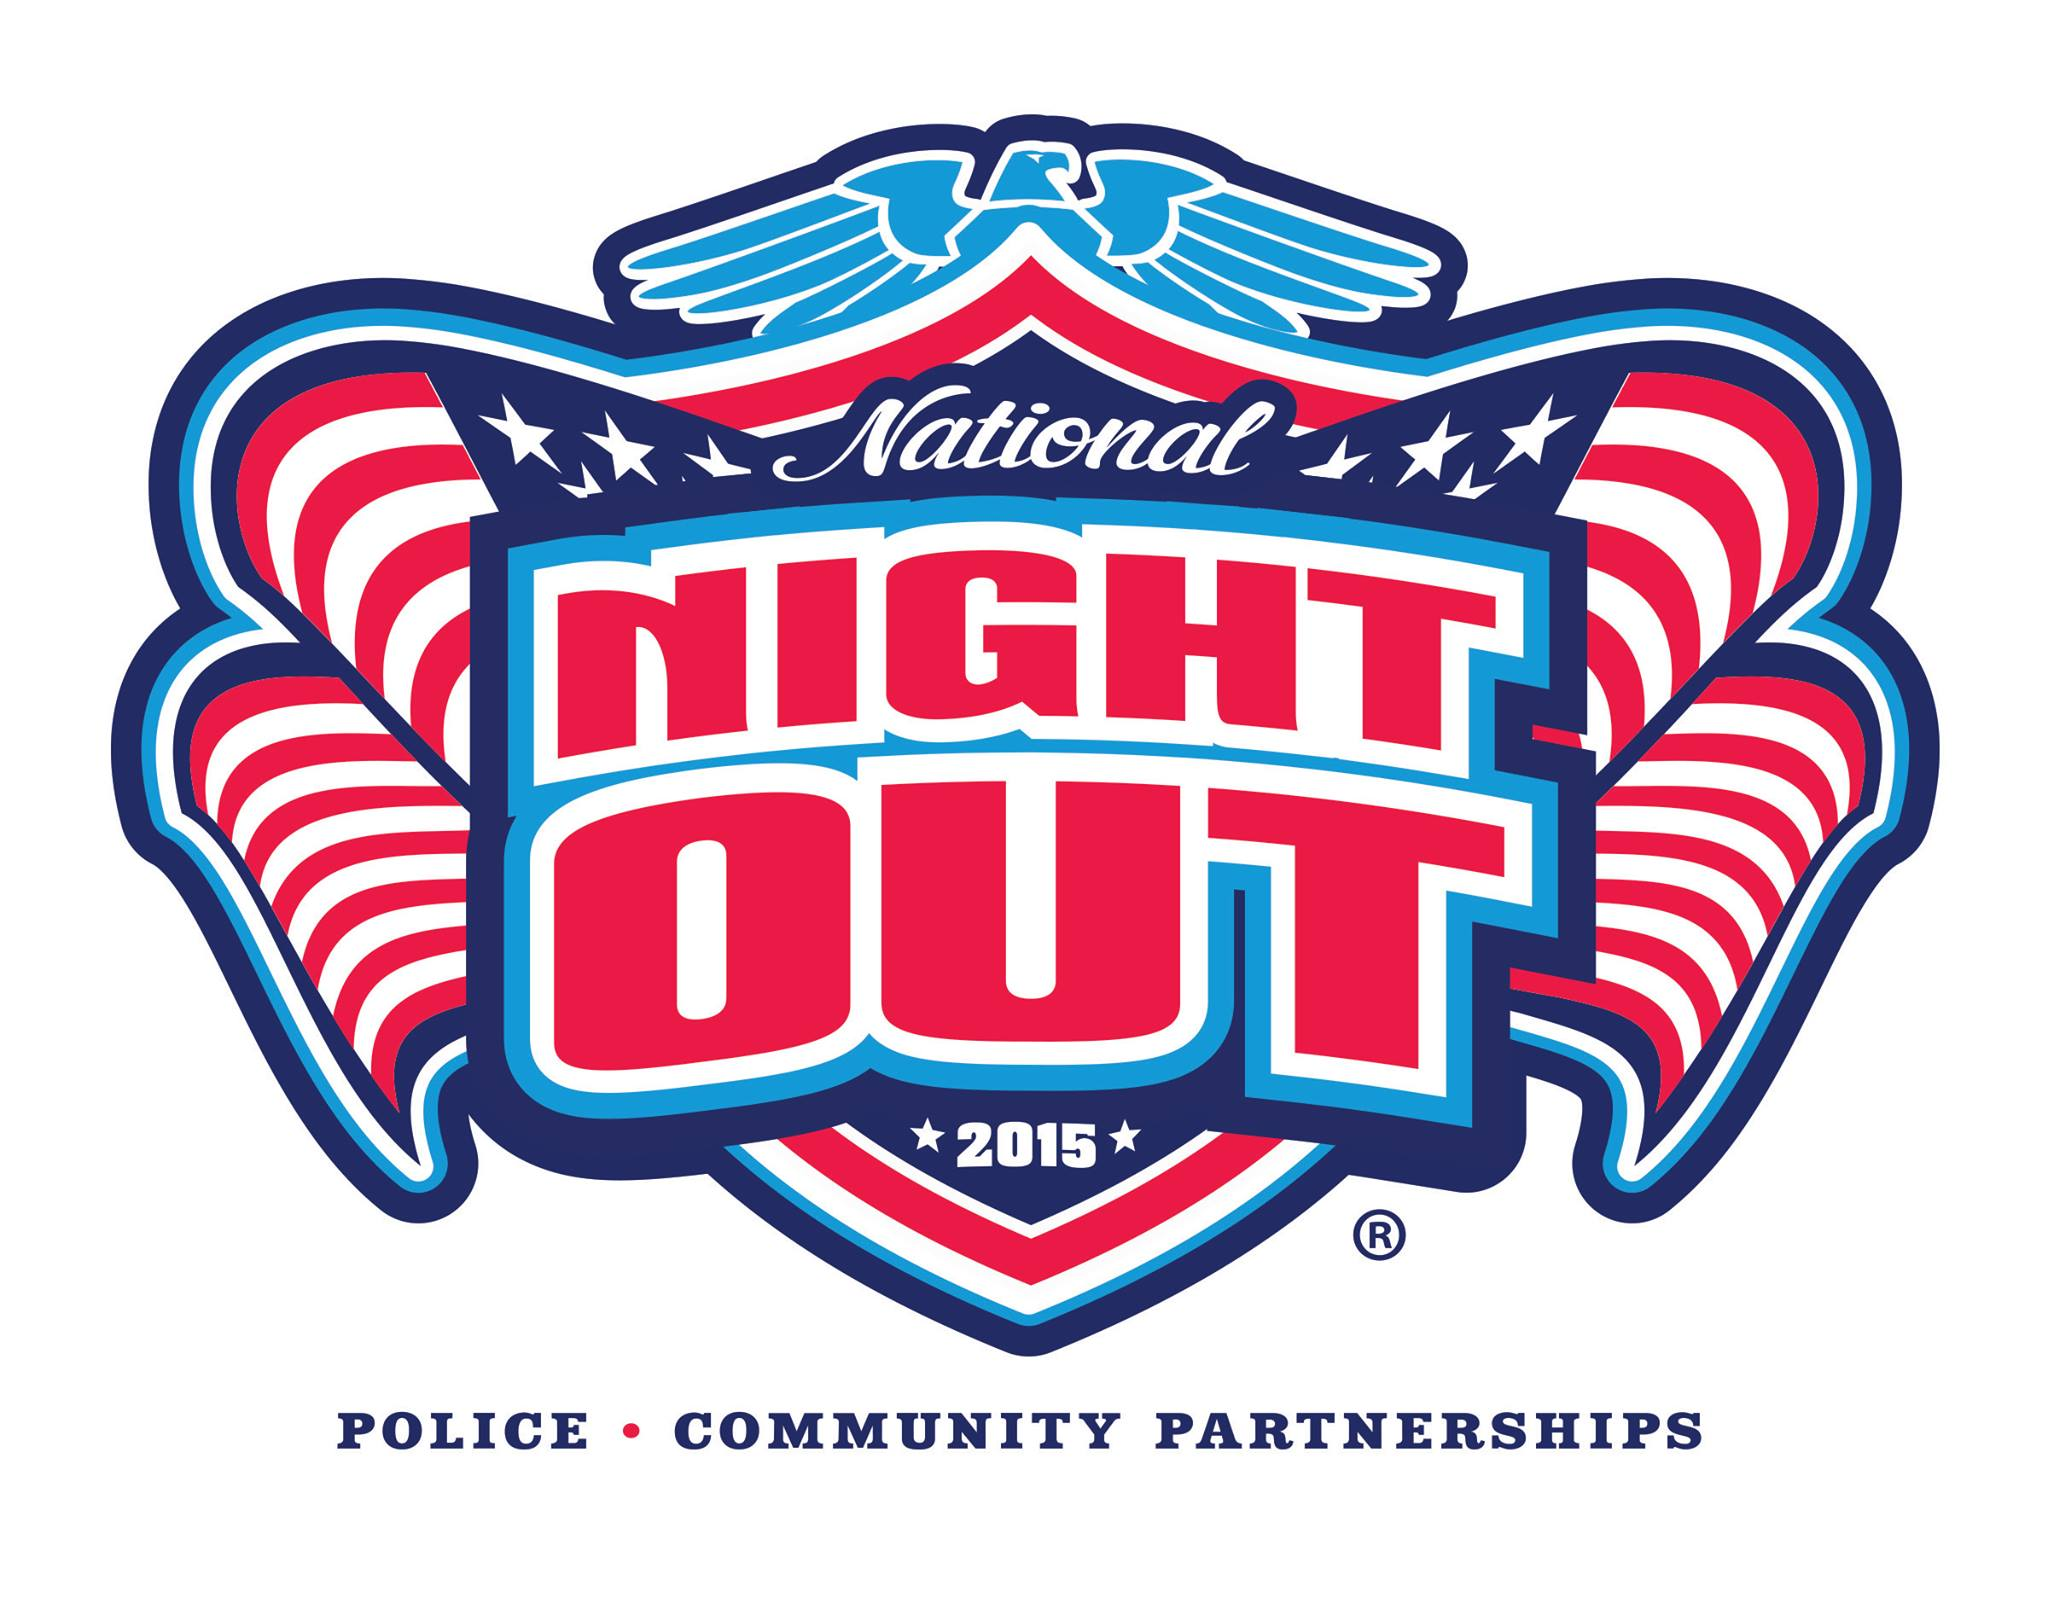 National Night Out Graphic